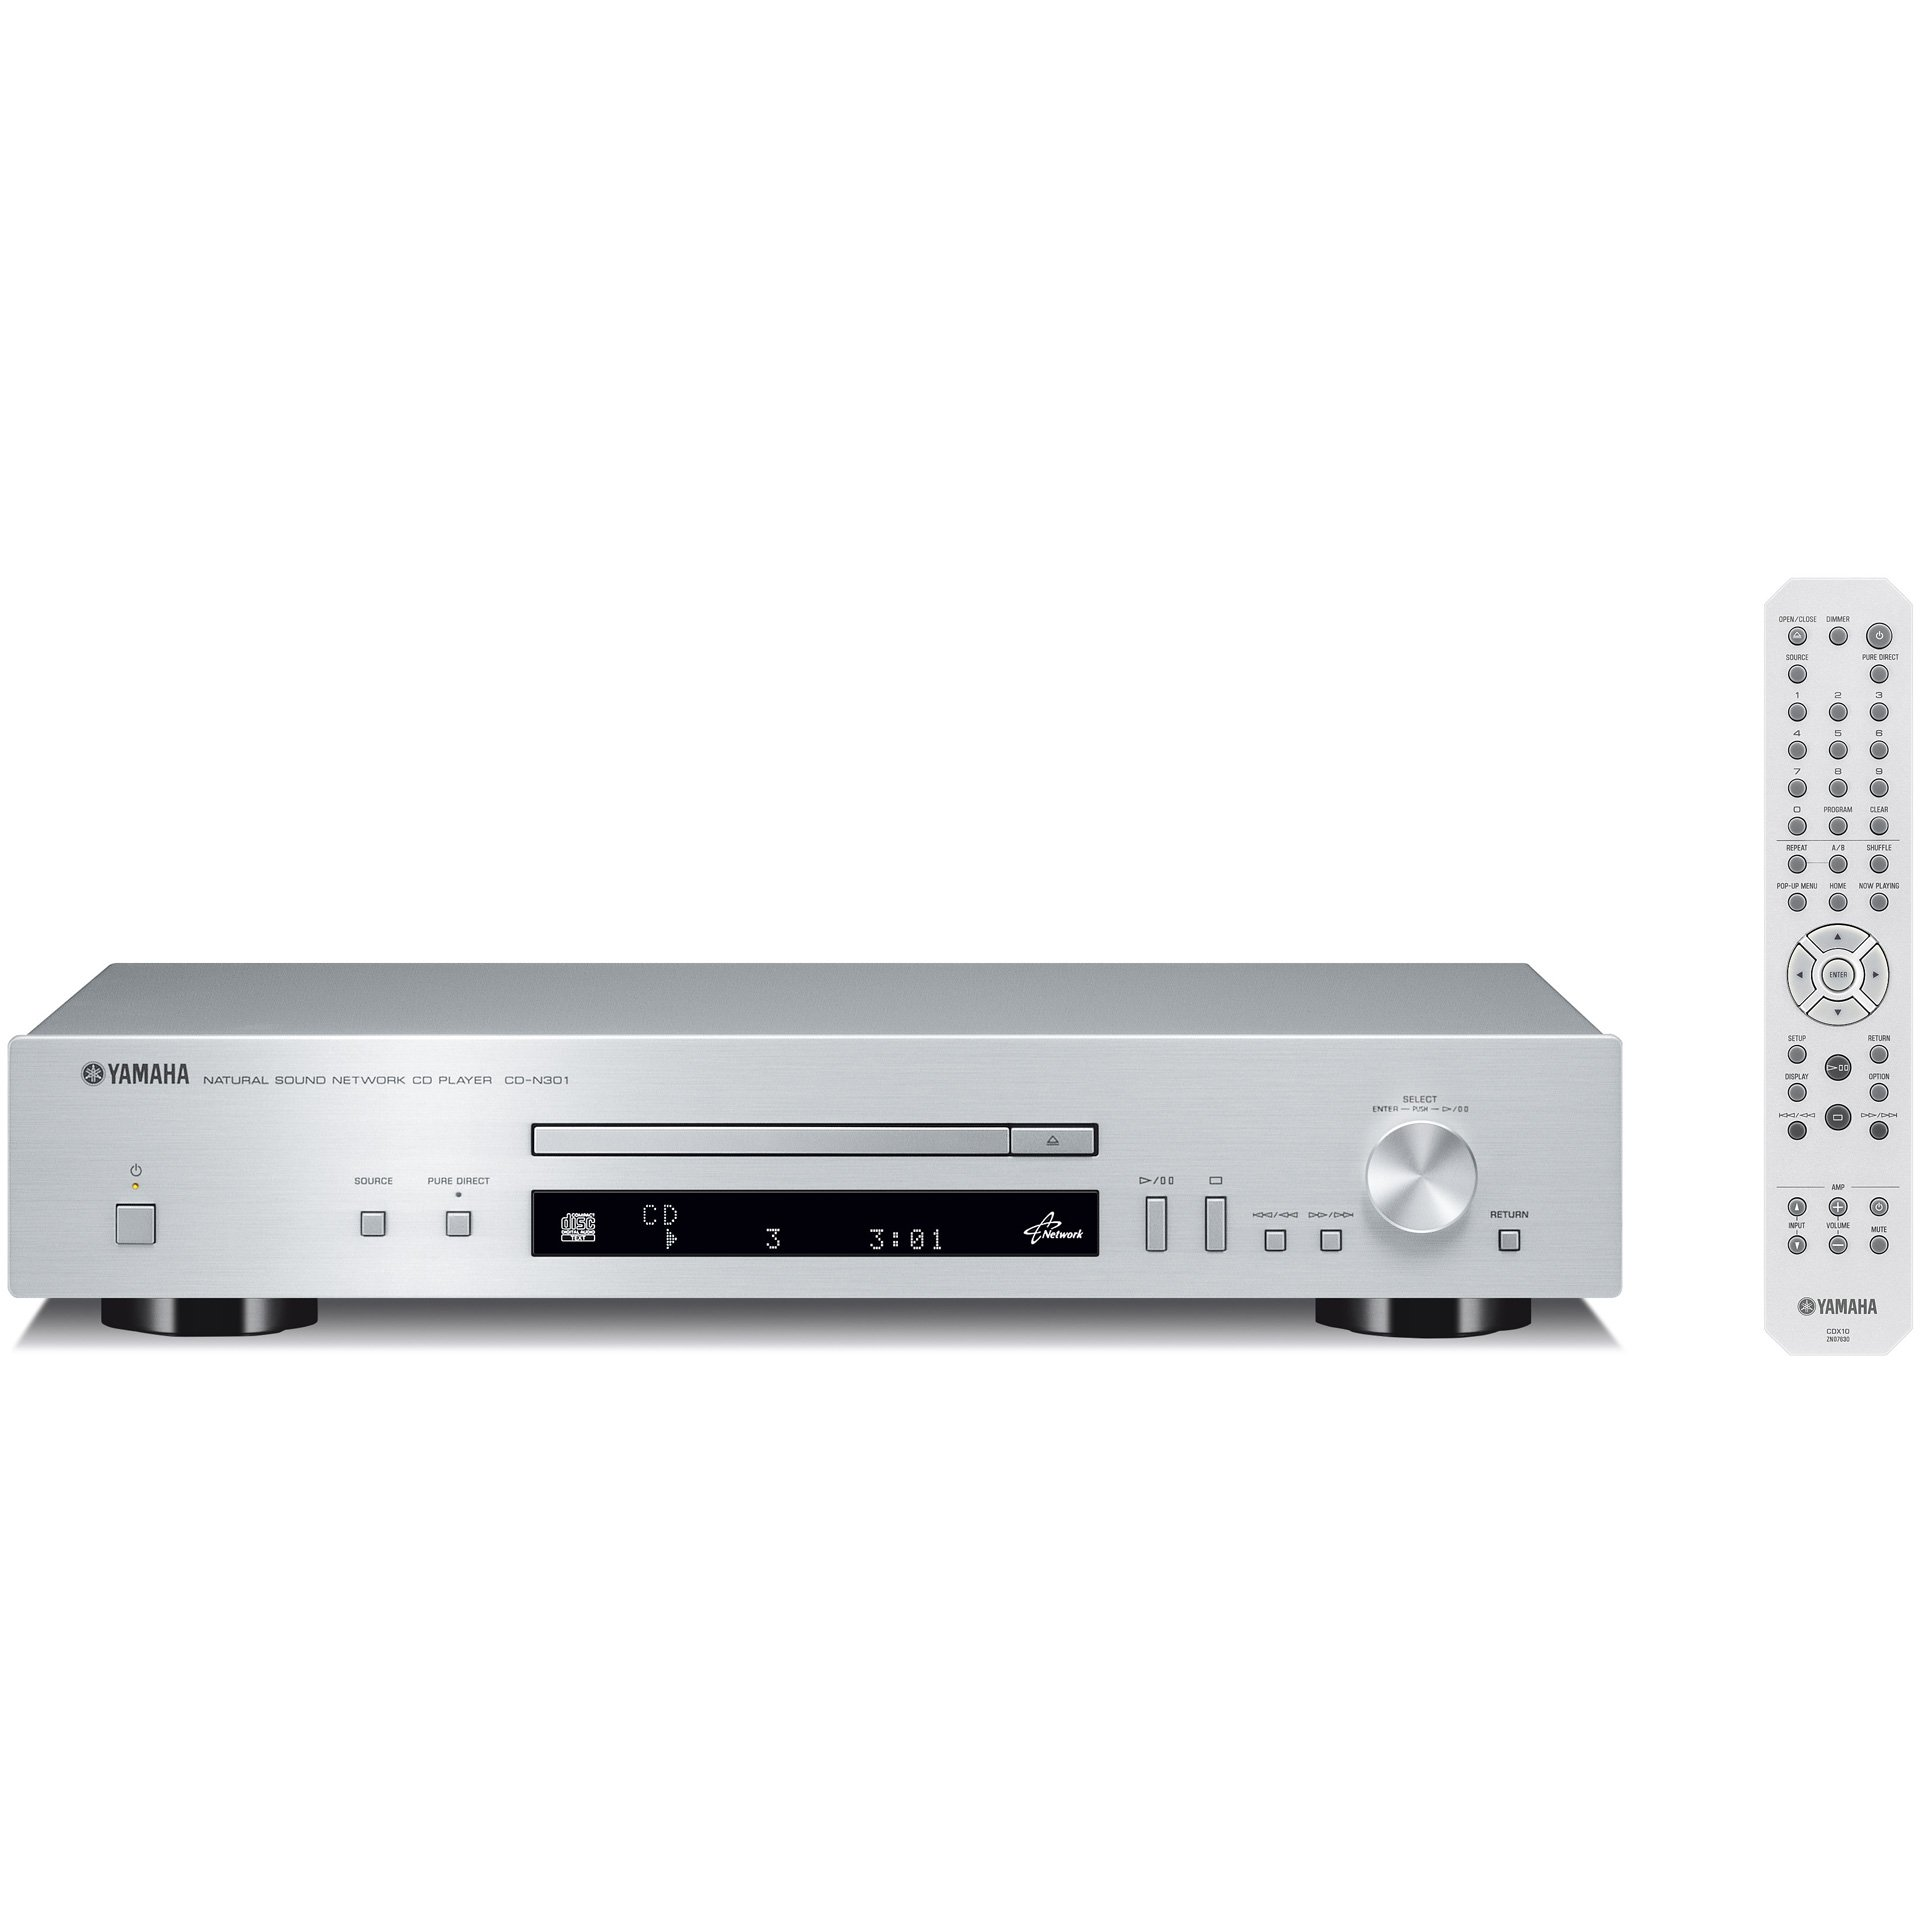 Yamaha CD-N301 (S) network CD player 192kHz / 24bit high resolution sound source corresponding Silver